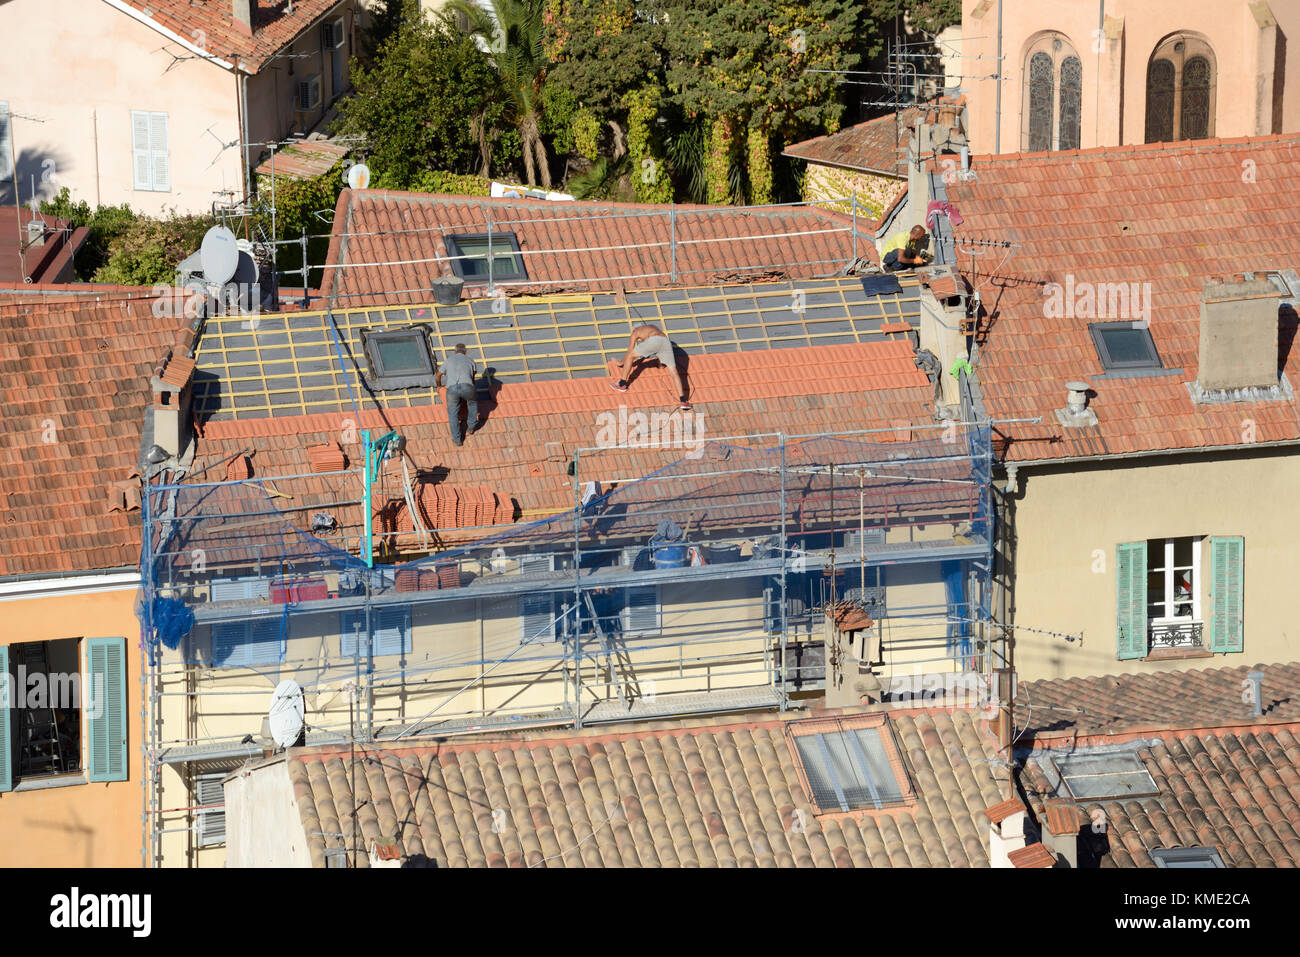 Roofers Retiling Roof or Roof Replacement in Le Suquet Old Town, Cannes, Alpes-Maritimes, France - Stock Image